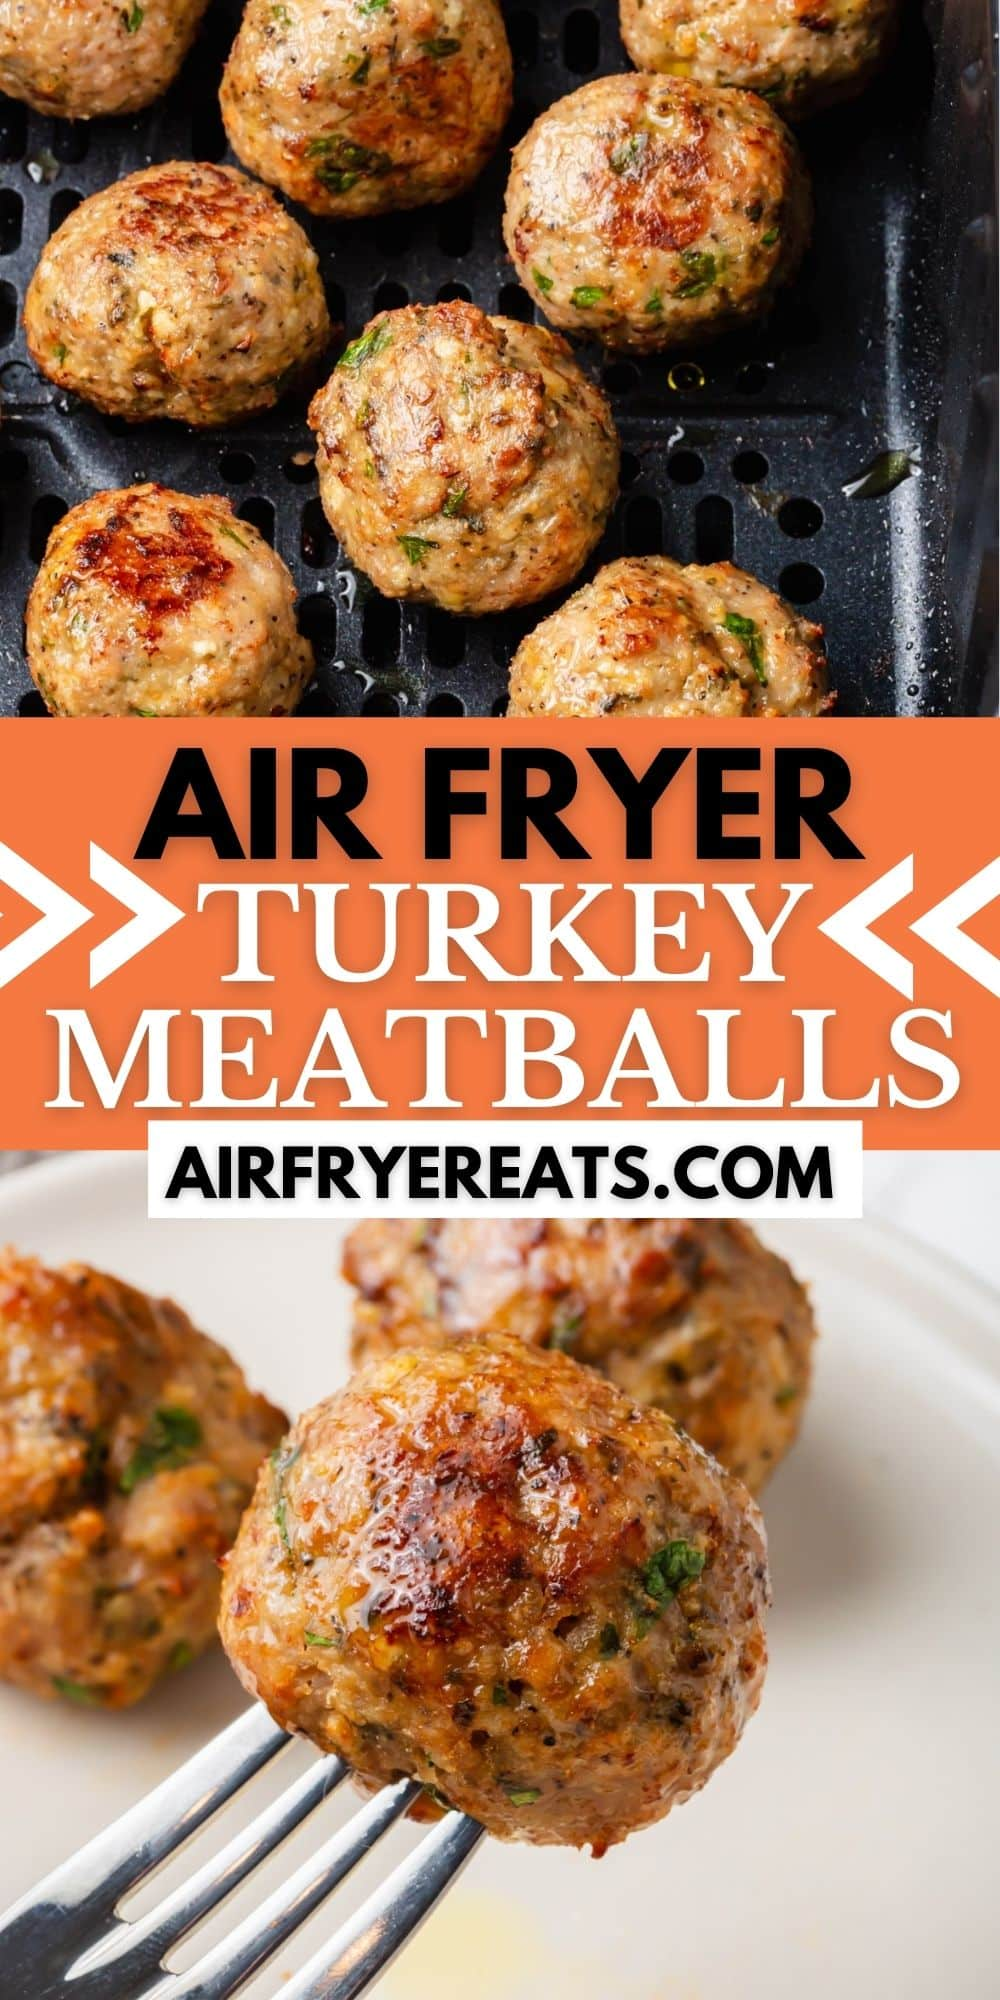 Air Fryer Turkey Meatballs are a healthier alternative to beef meatballs, packed with delicious flavor and ready in 20 minutes in the Air Fryer. #airfryer #turkeymeatballs via @vegetarianmamma